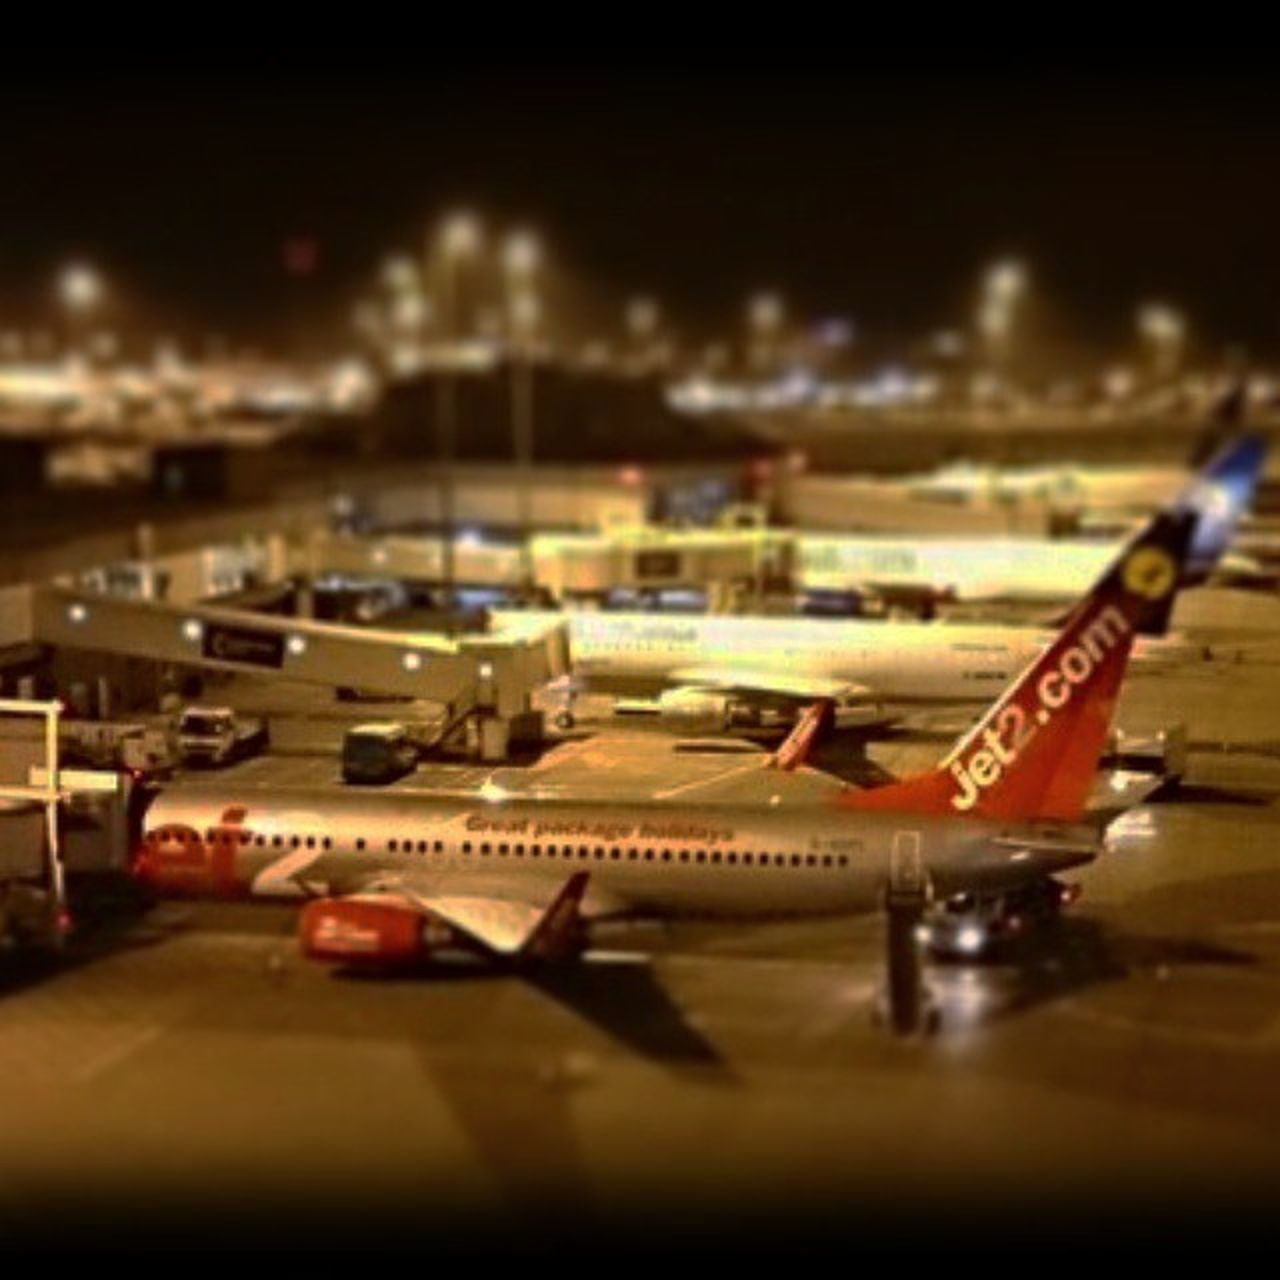 Latenight Manchester Toyairport Jet2 Boeing 757 Night Airport